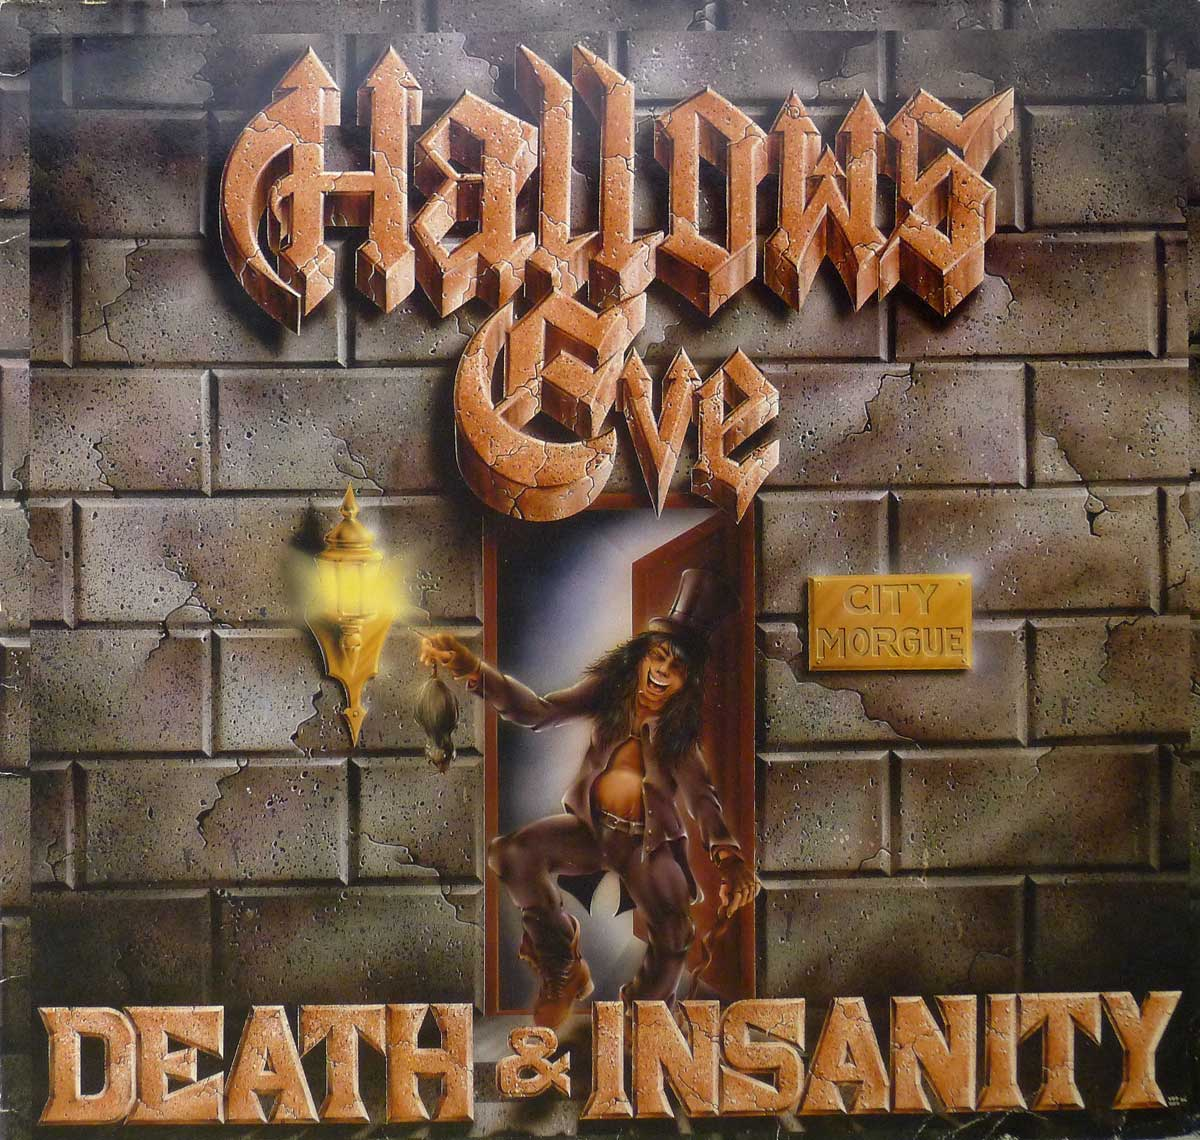 large photo of the album front cover of: Hallow's Eve Death & Insanity